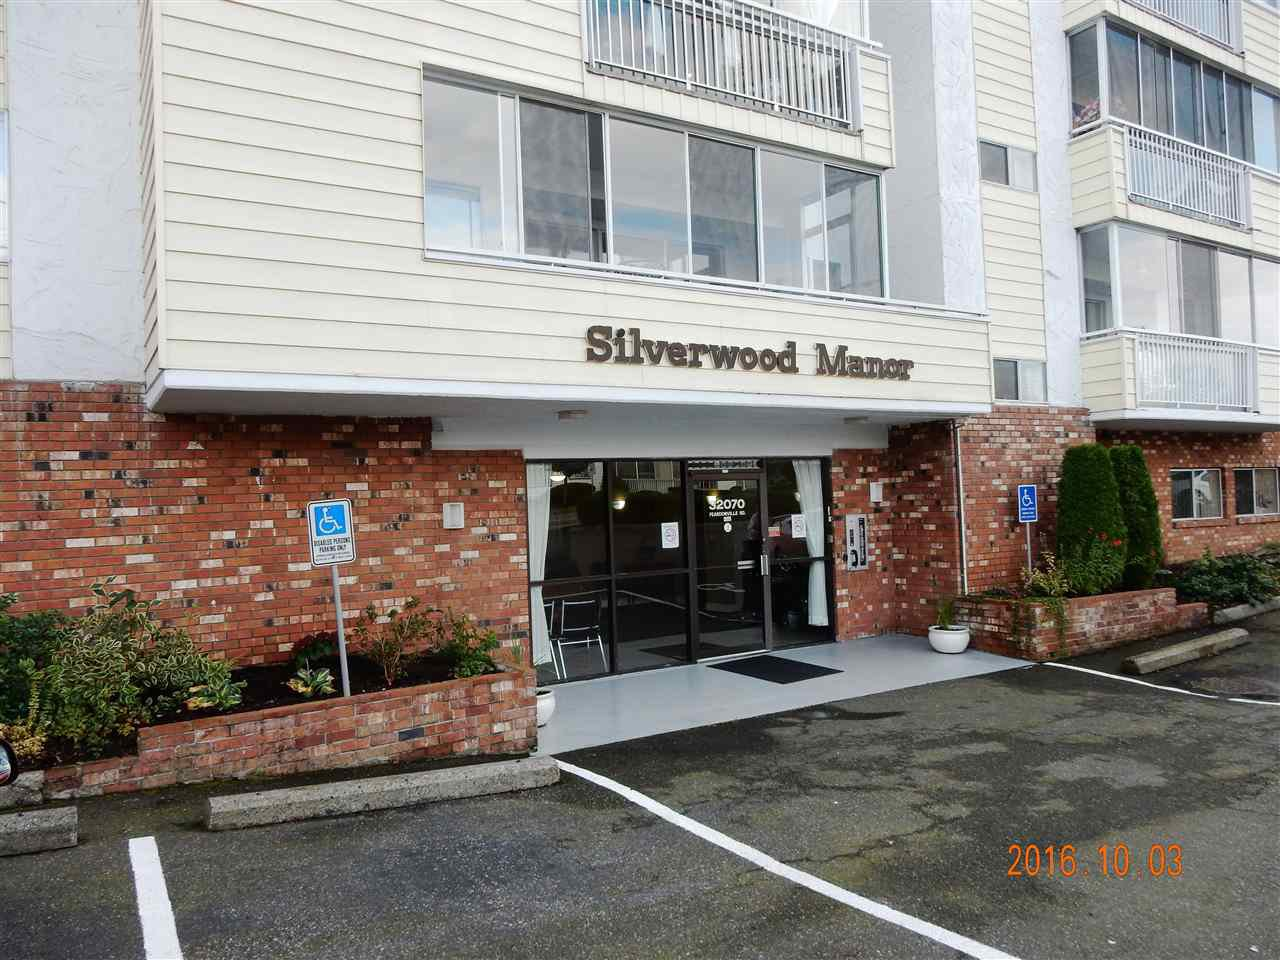 """Photo 1: Photos: 211 32070 PEARDONVILLE Road in Abbotsford: Abbotsford West Condo for sale in """"Silverwood Manor"""" : MLS®# R2113890"""